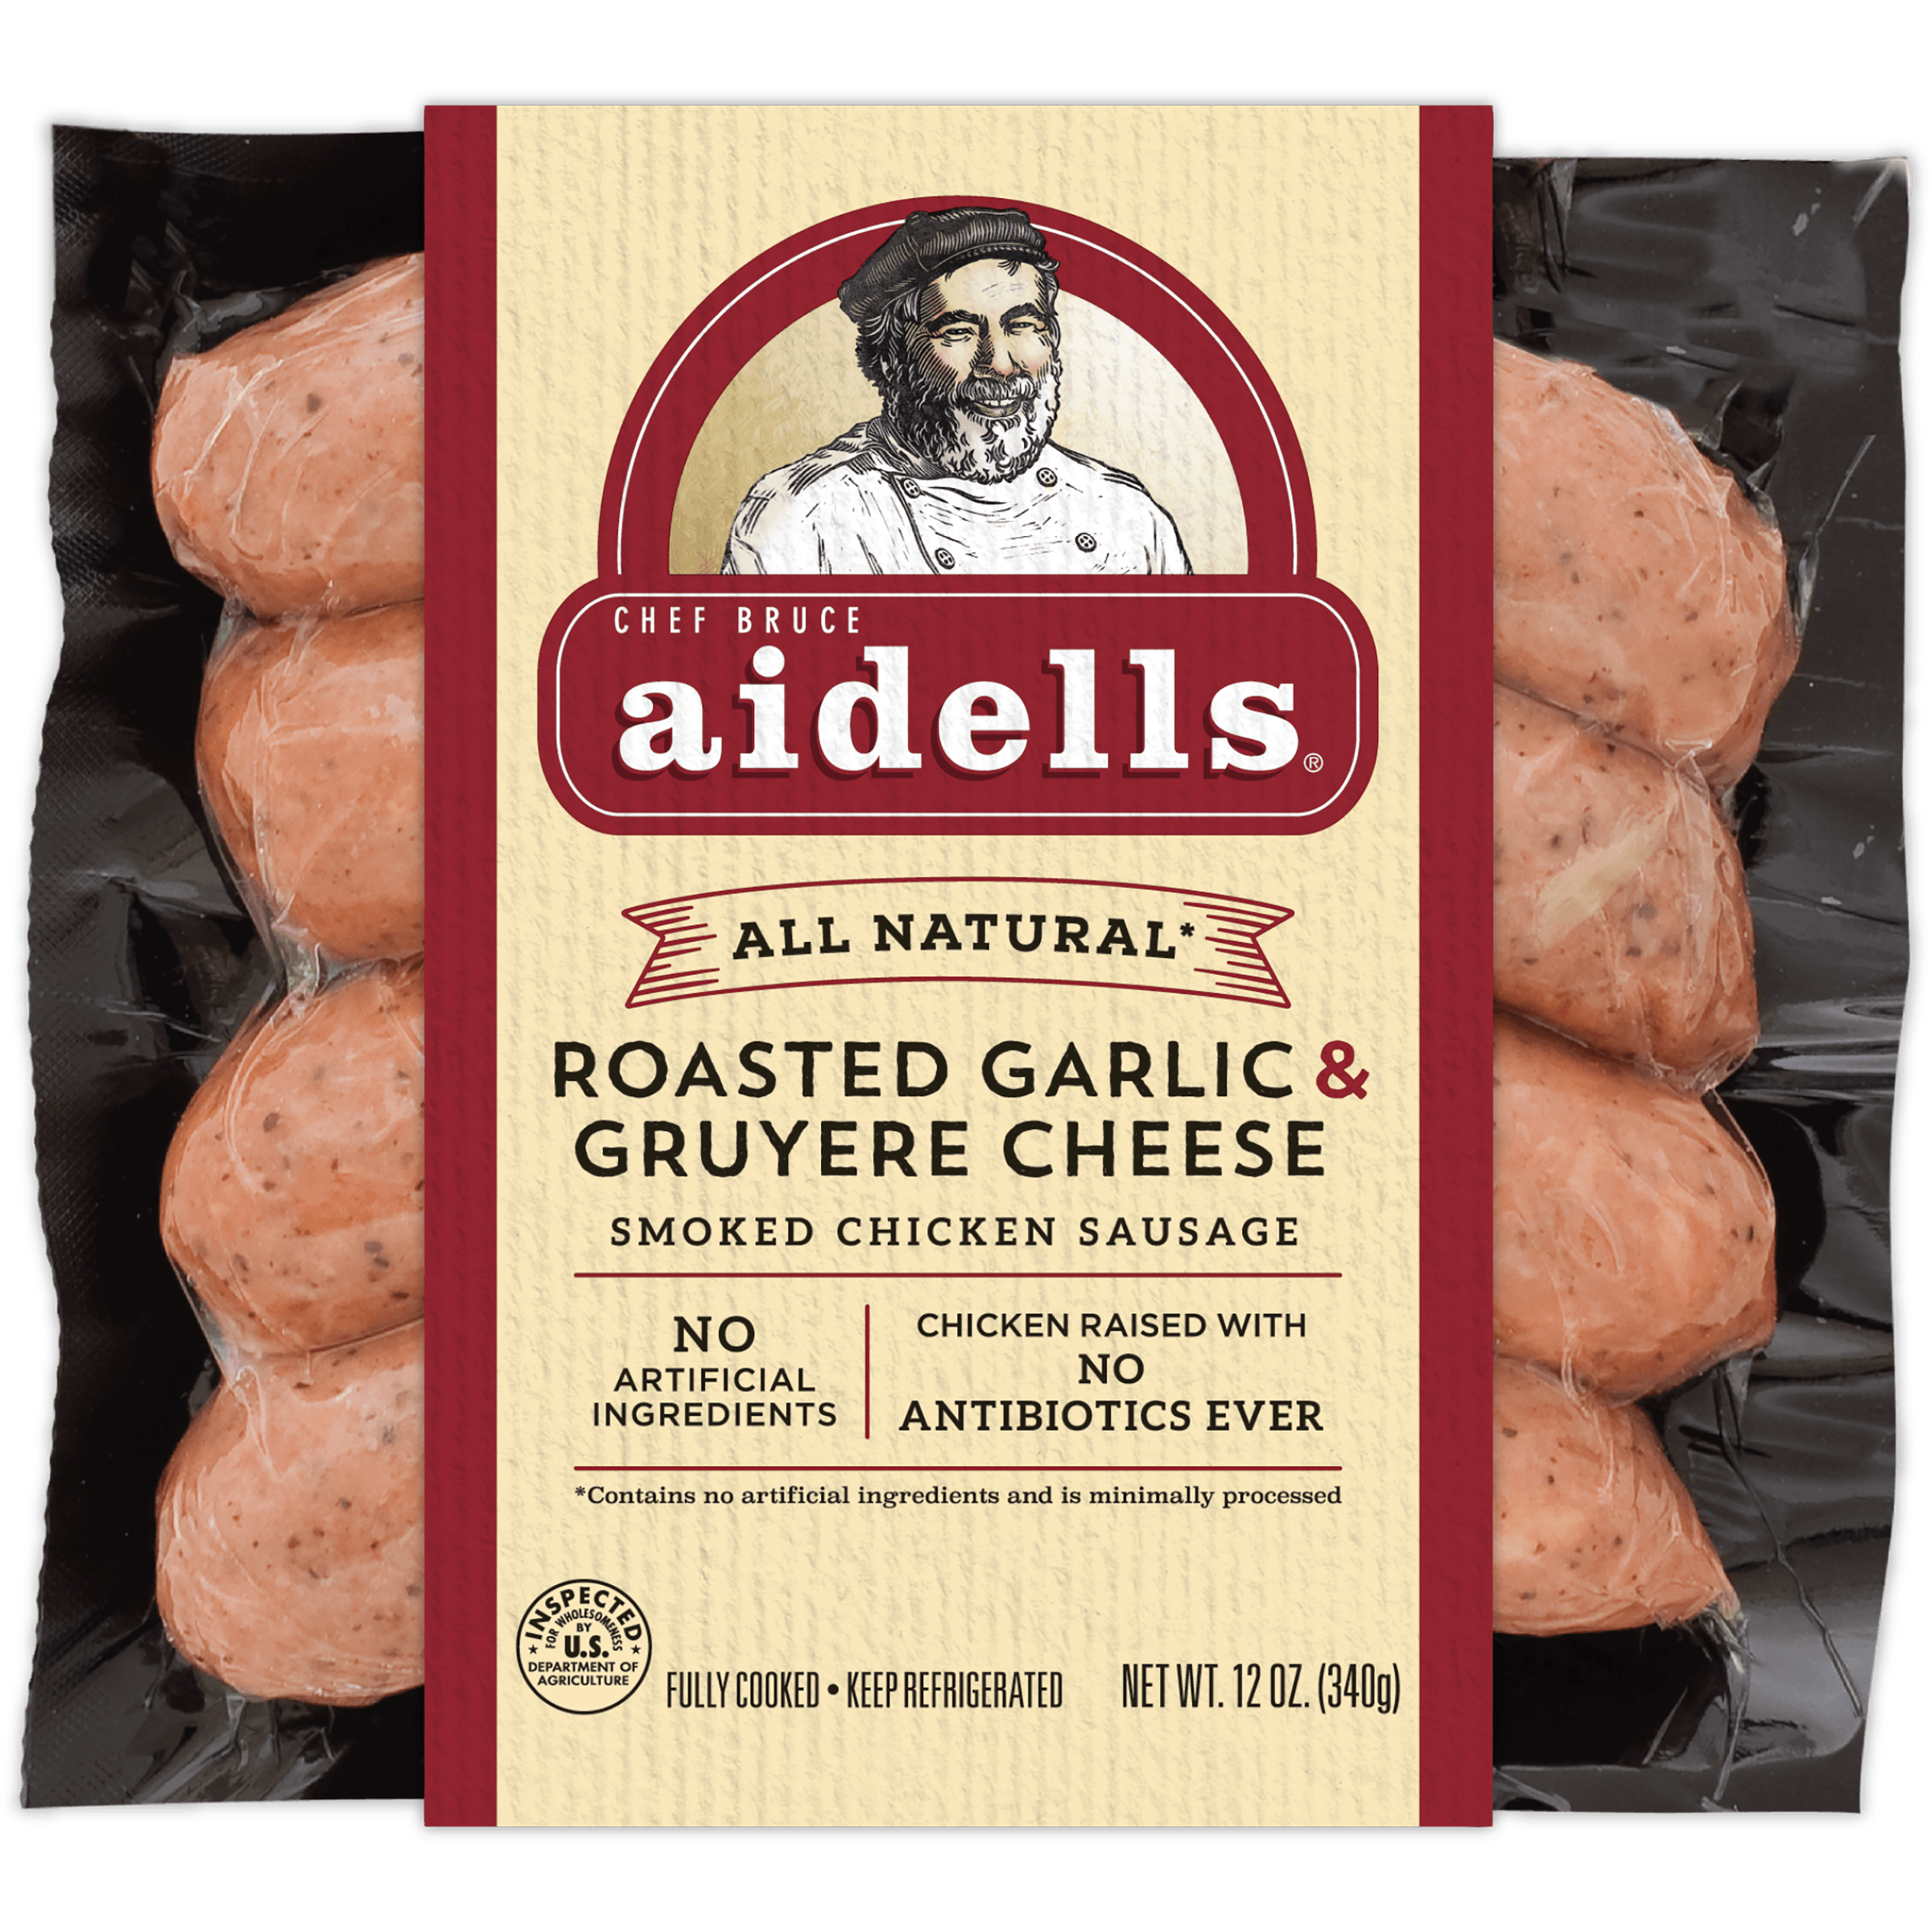 Aidells Roasted Garlic & Gruyere Cheese Smoked Chicken Sausage, 12 Oz., 4 Count